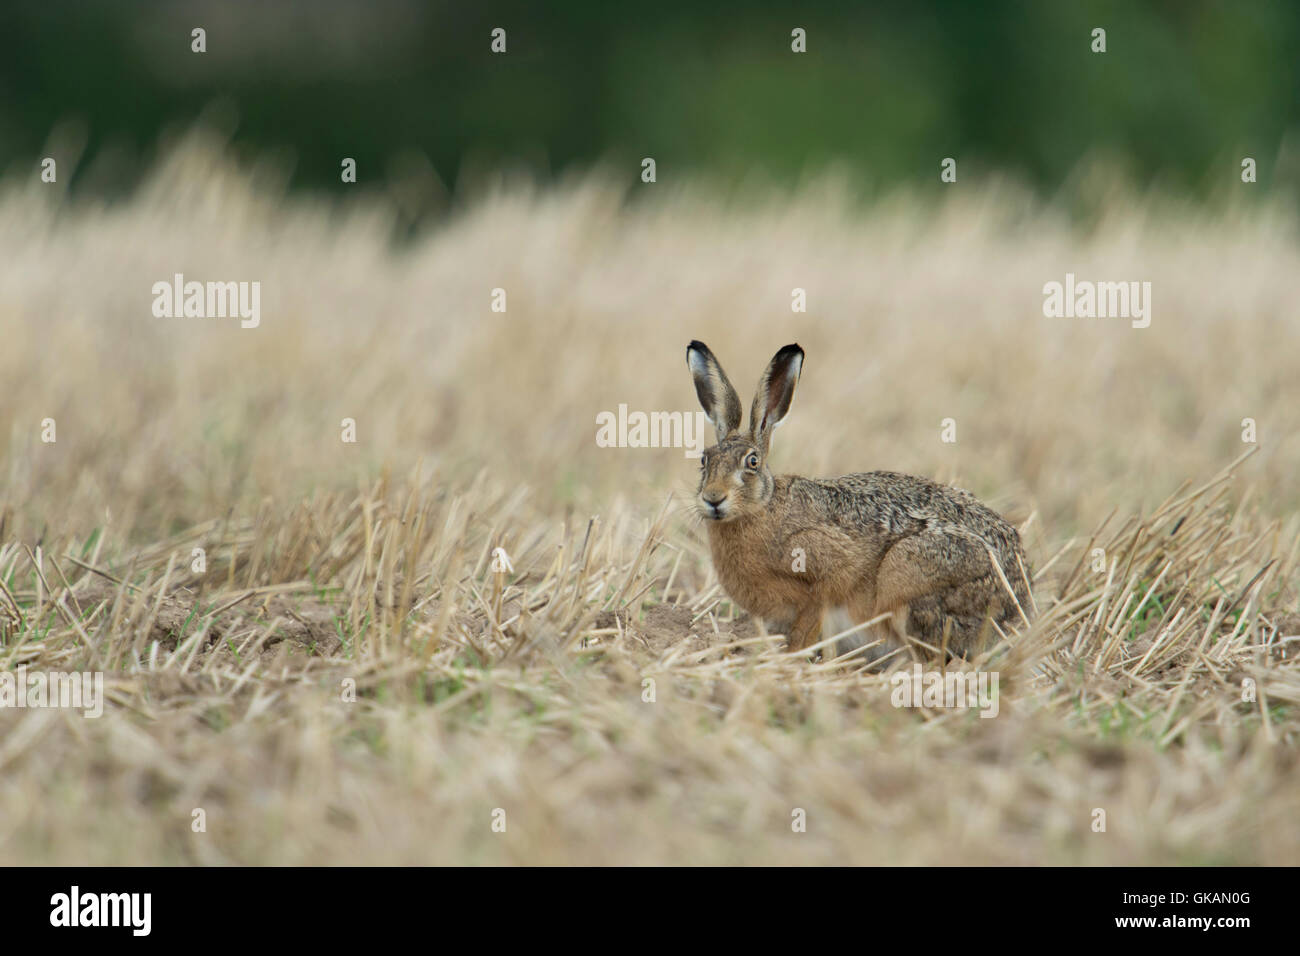 Anxious Brown Hare / European Hare / Feldhase ( Lepus europaeus ) sitting in a stubble field, harvested field. - Stock Image